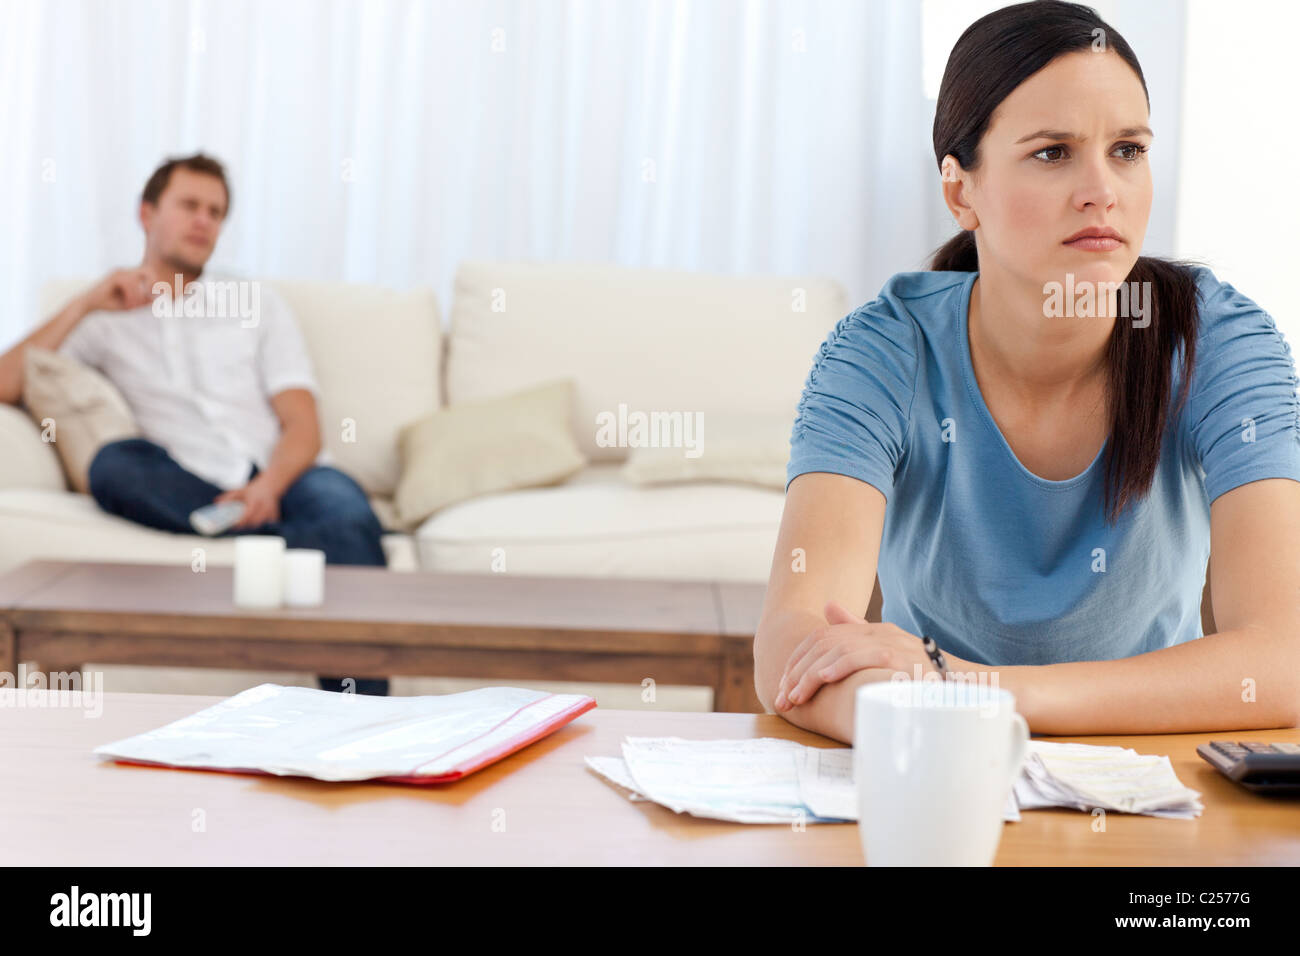 Angry woman doing her account while her boyfriend relaxing - Stock Image